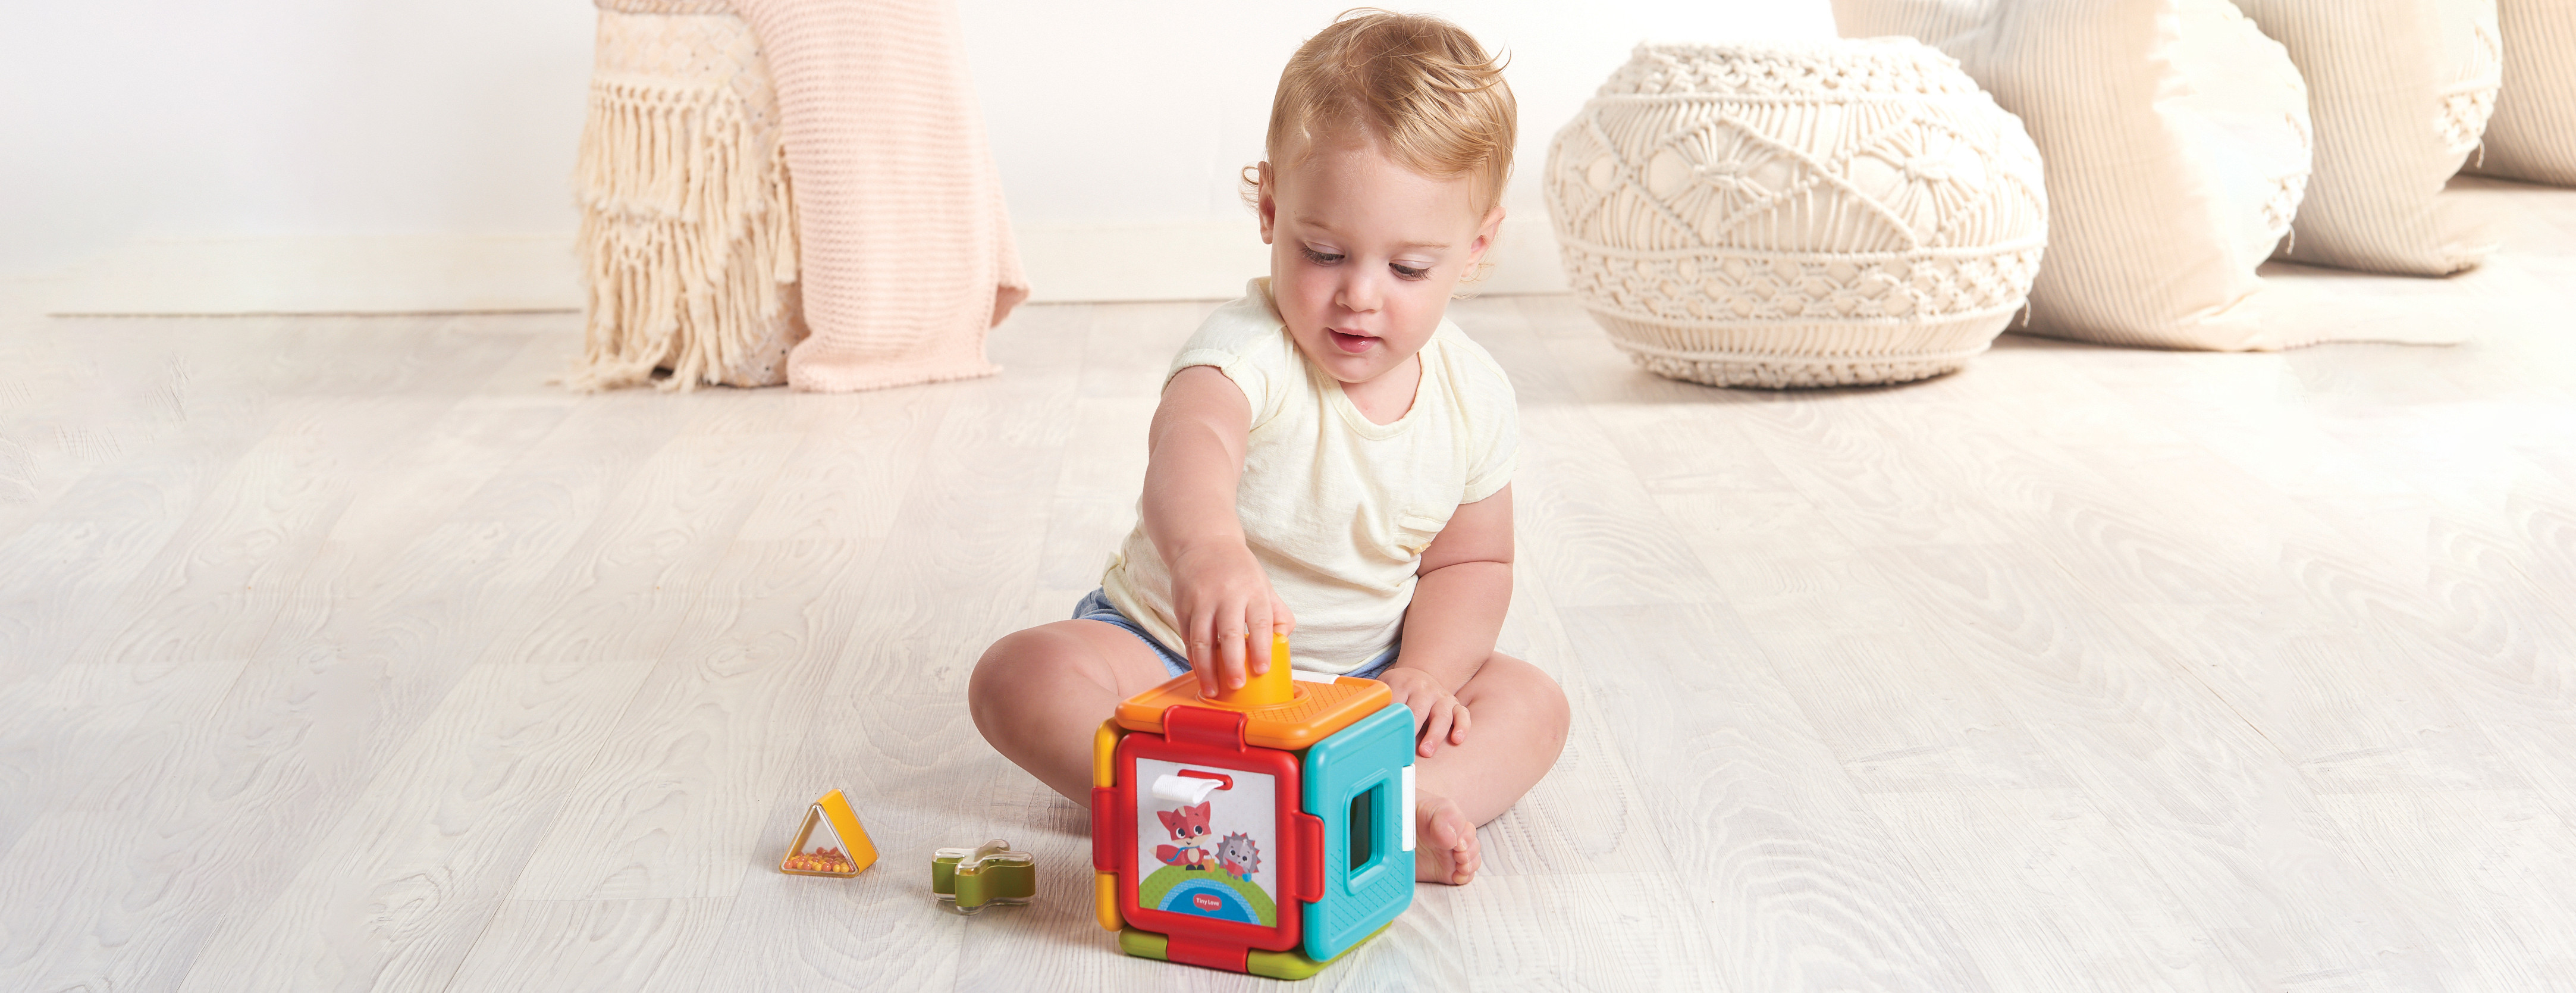 2-in-1 Sorter & Puzzle Introduces baby  to fun playtime and appeals to multiple senses